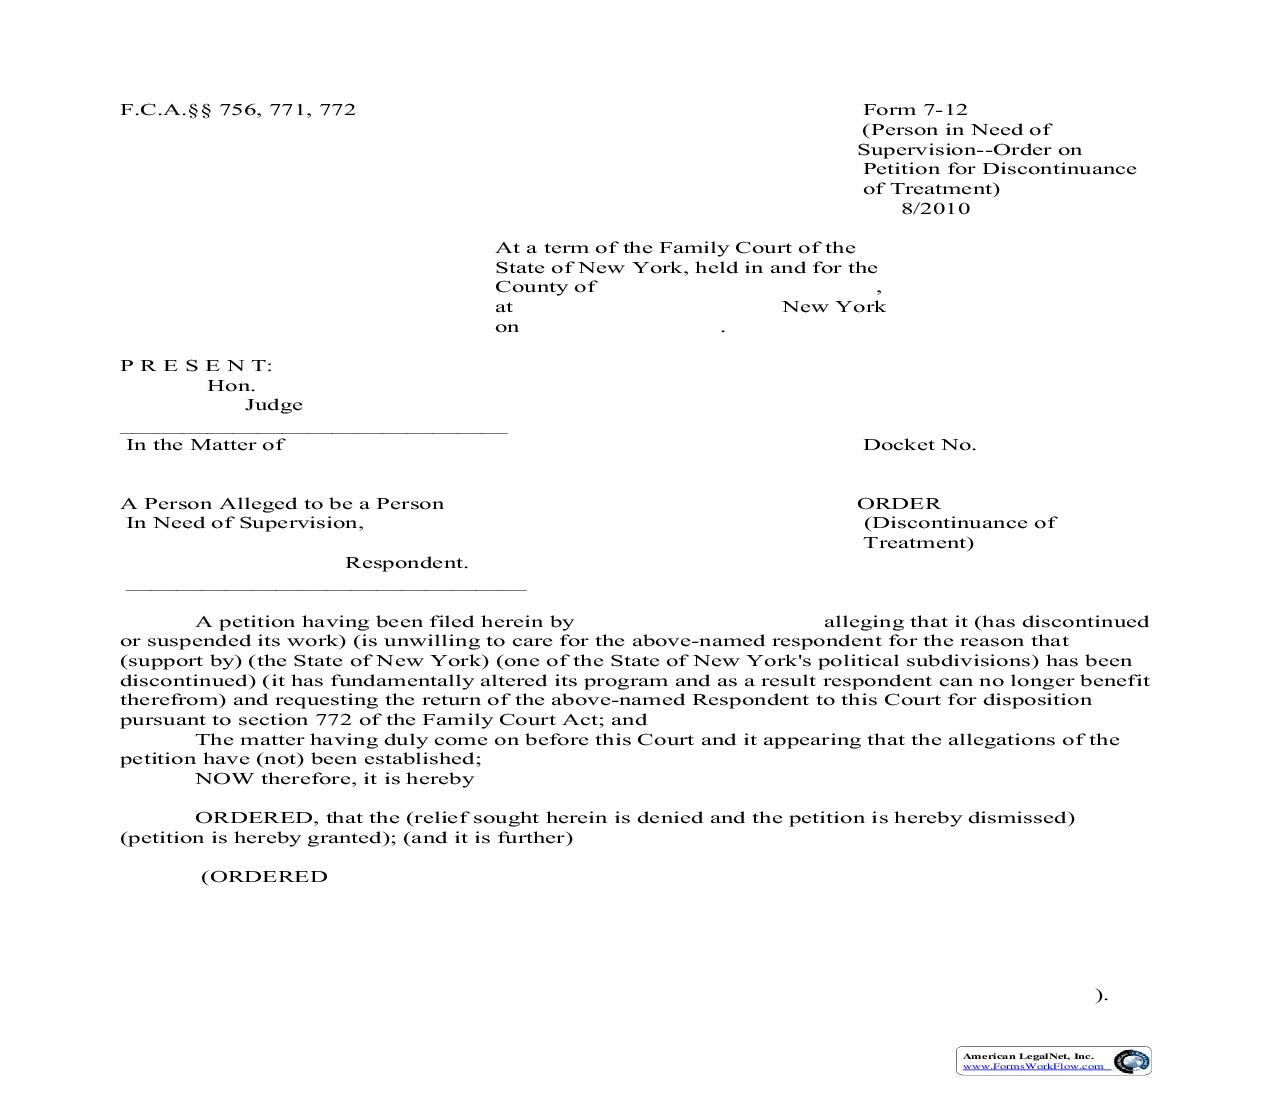 Order Discontinuance Of Treatment {7-12} | Pdf Fpdf Doc Docx | New York